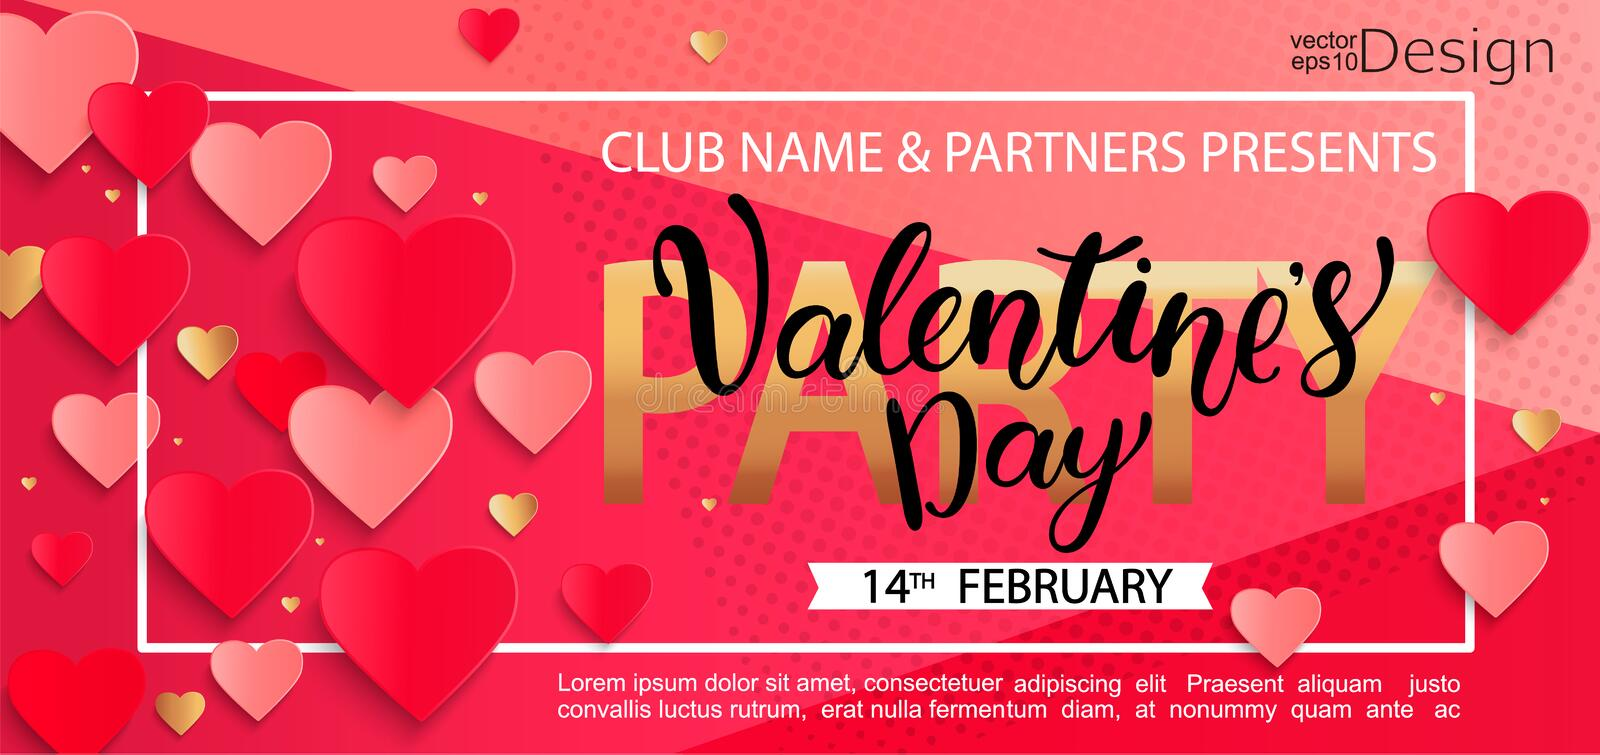 Card for happy Valentines day party. vector illustration